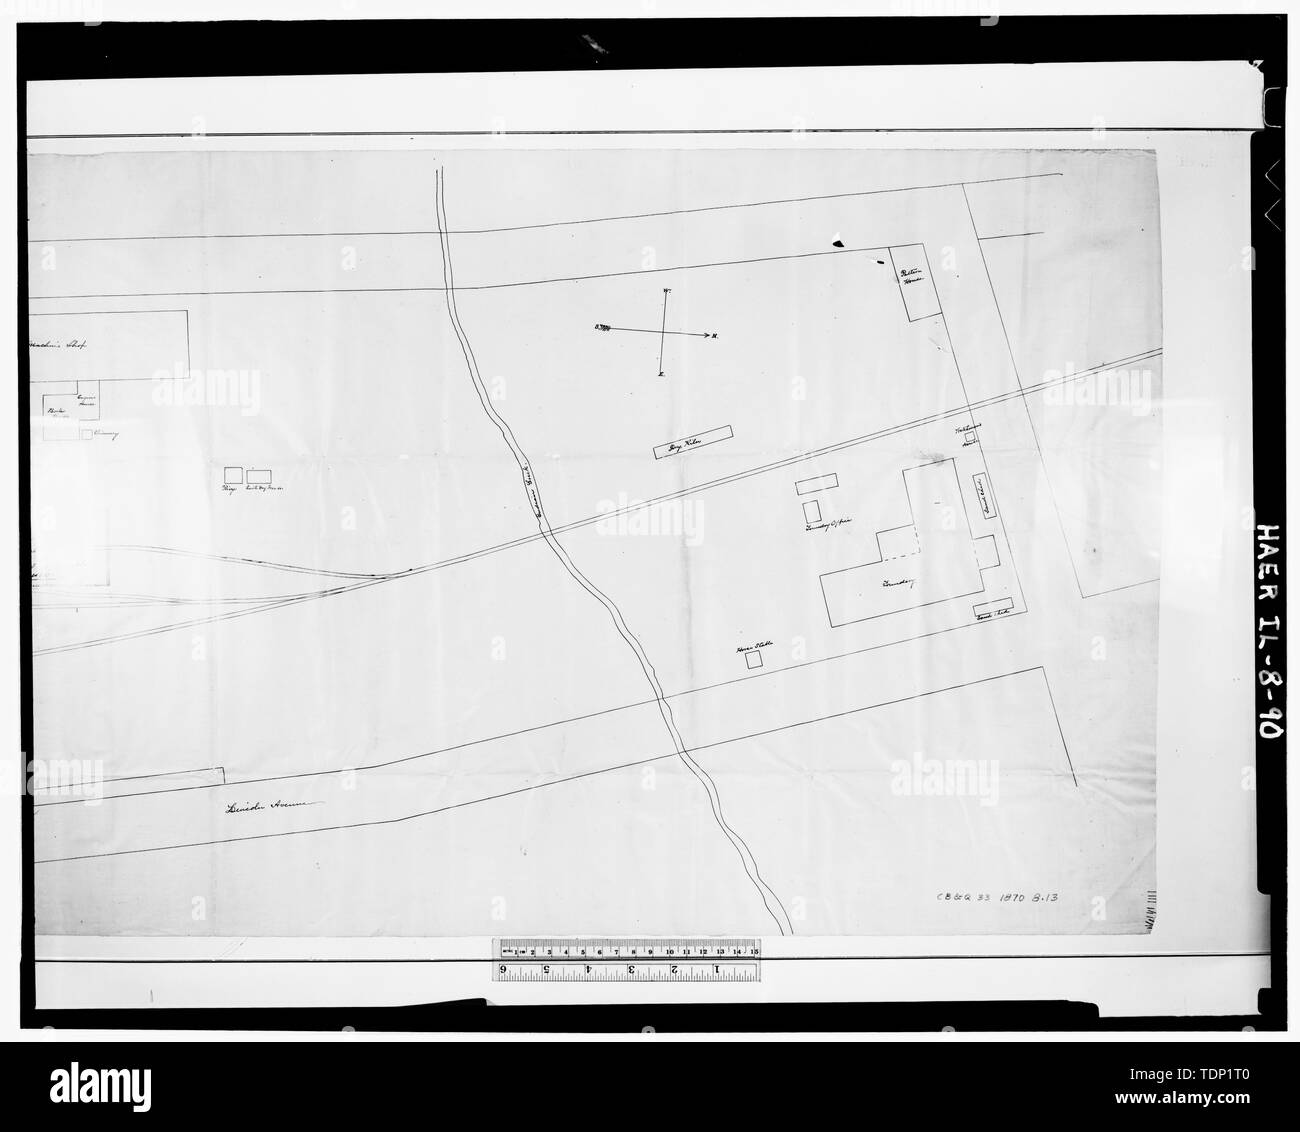 Railroad Locomotive Shops Black and White Stock Photos ... on railroad roundhouses chicago, railroad shops, railroad turntable, on30 track plans, railroad yard design, lionel train track layout plans, walthers track plans, railroad roundhouses missouri, railroad structure plans, railroad tracks, railroad roundhouses in ohio, o gauge turntable plans, 4x8 ho track plans, railroad engine shed plans, railroad yards in chicago, railroad water tower plans, railroad stations, ho scale turntable plans,